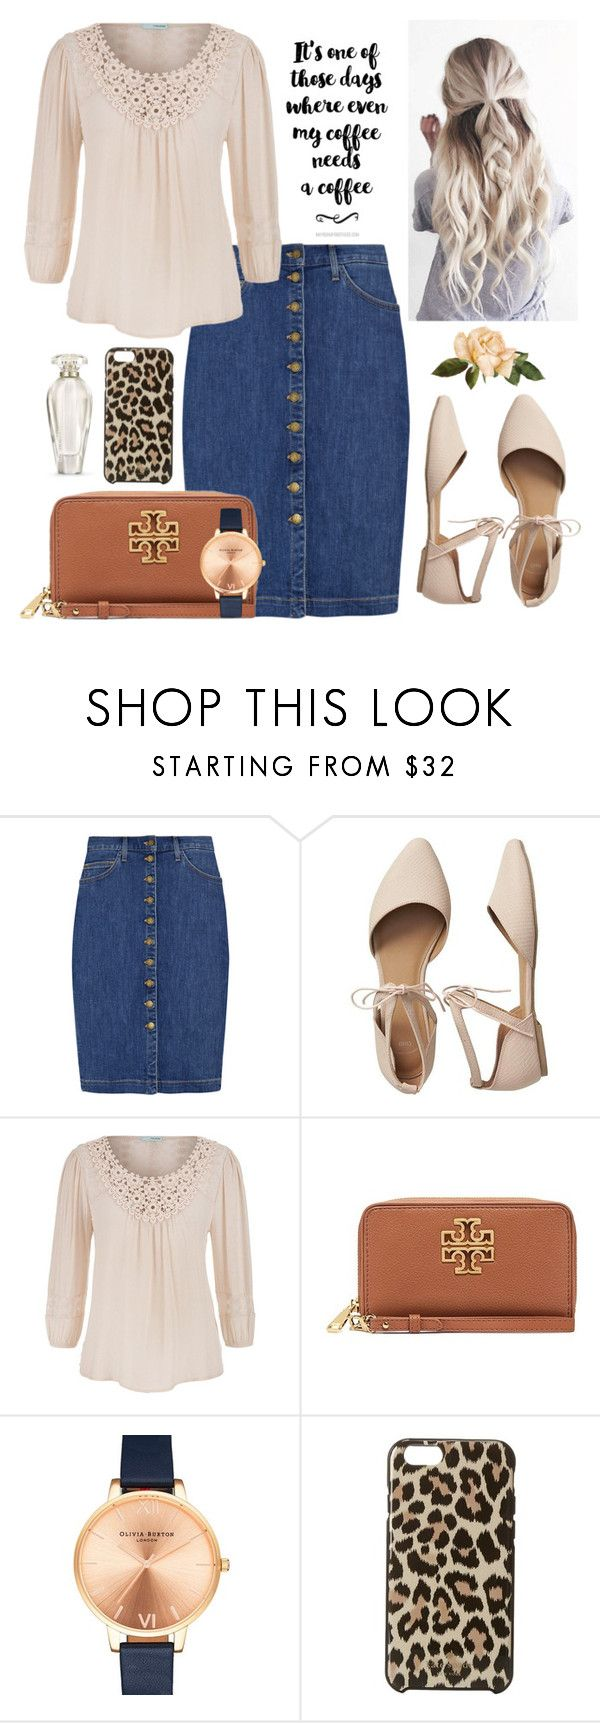 """""""Untitled #147"""" by sarahgriffis ❤ liked on Polyvore featuring Current/Elliott, Gap, maurices, Tory Burch, Olivia Burton, Kate Spade and Victoria's Secret"""